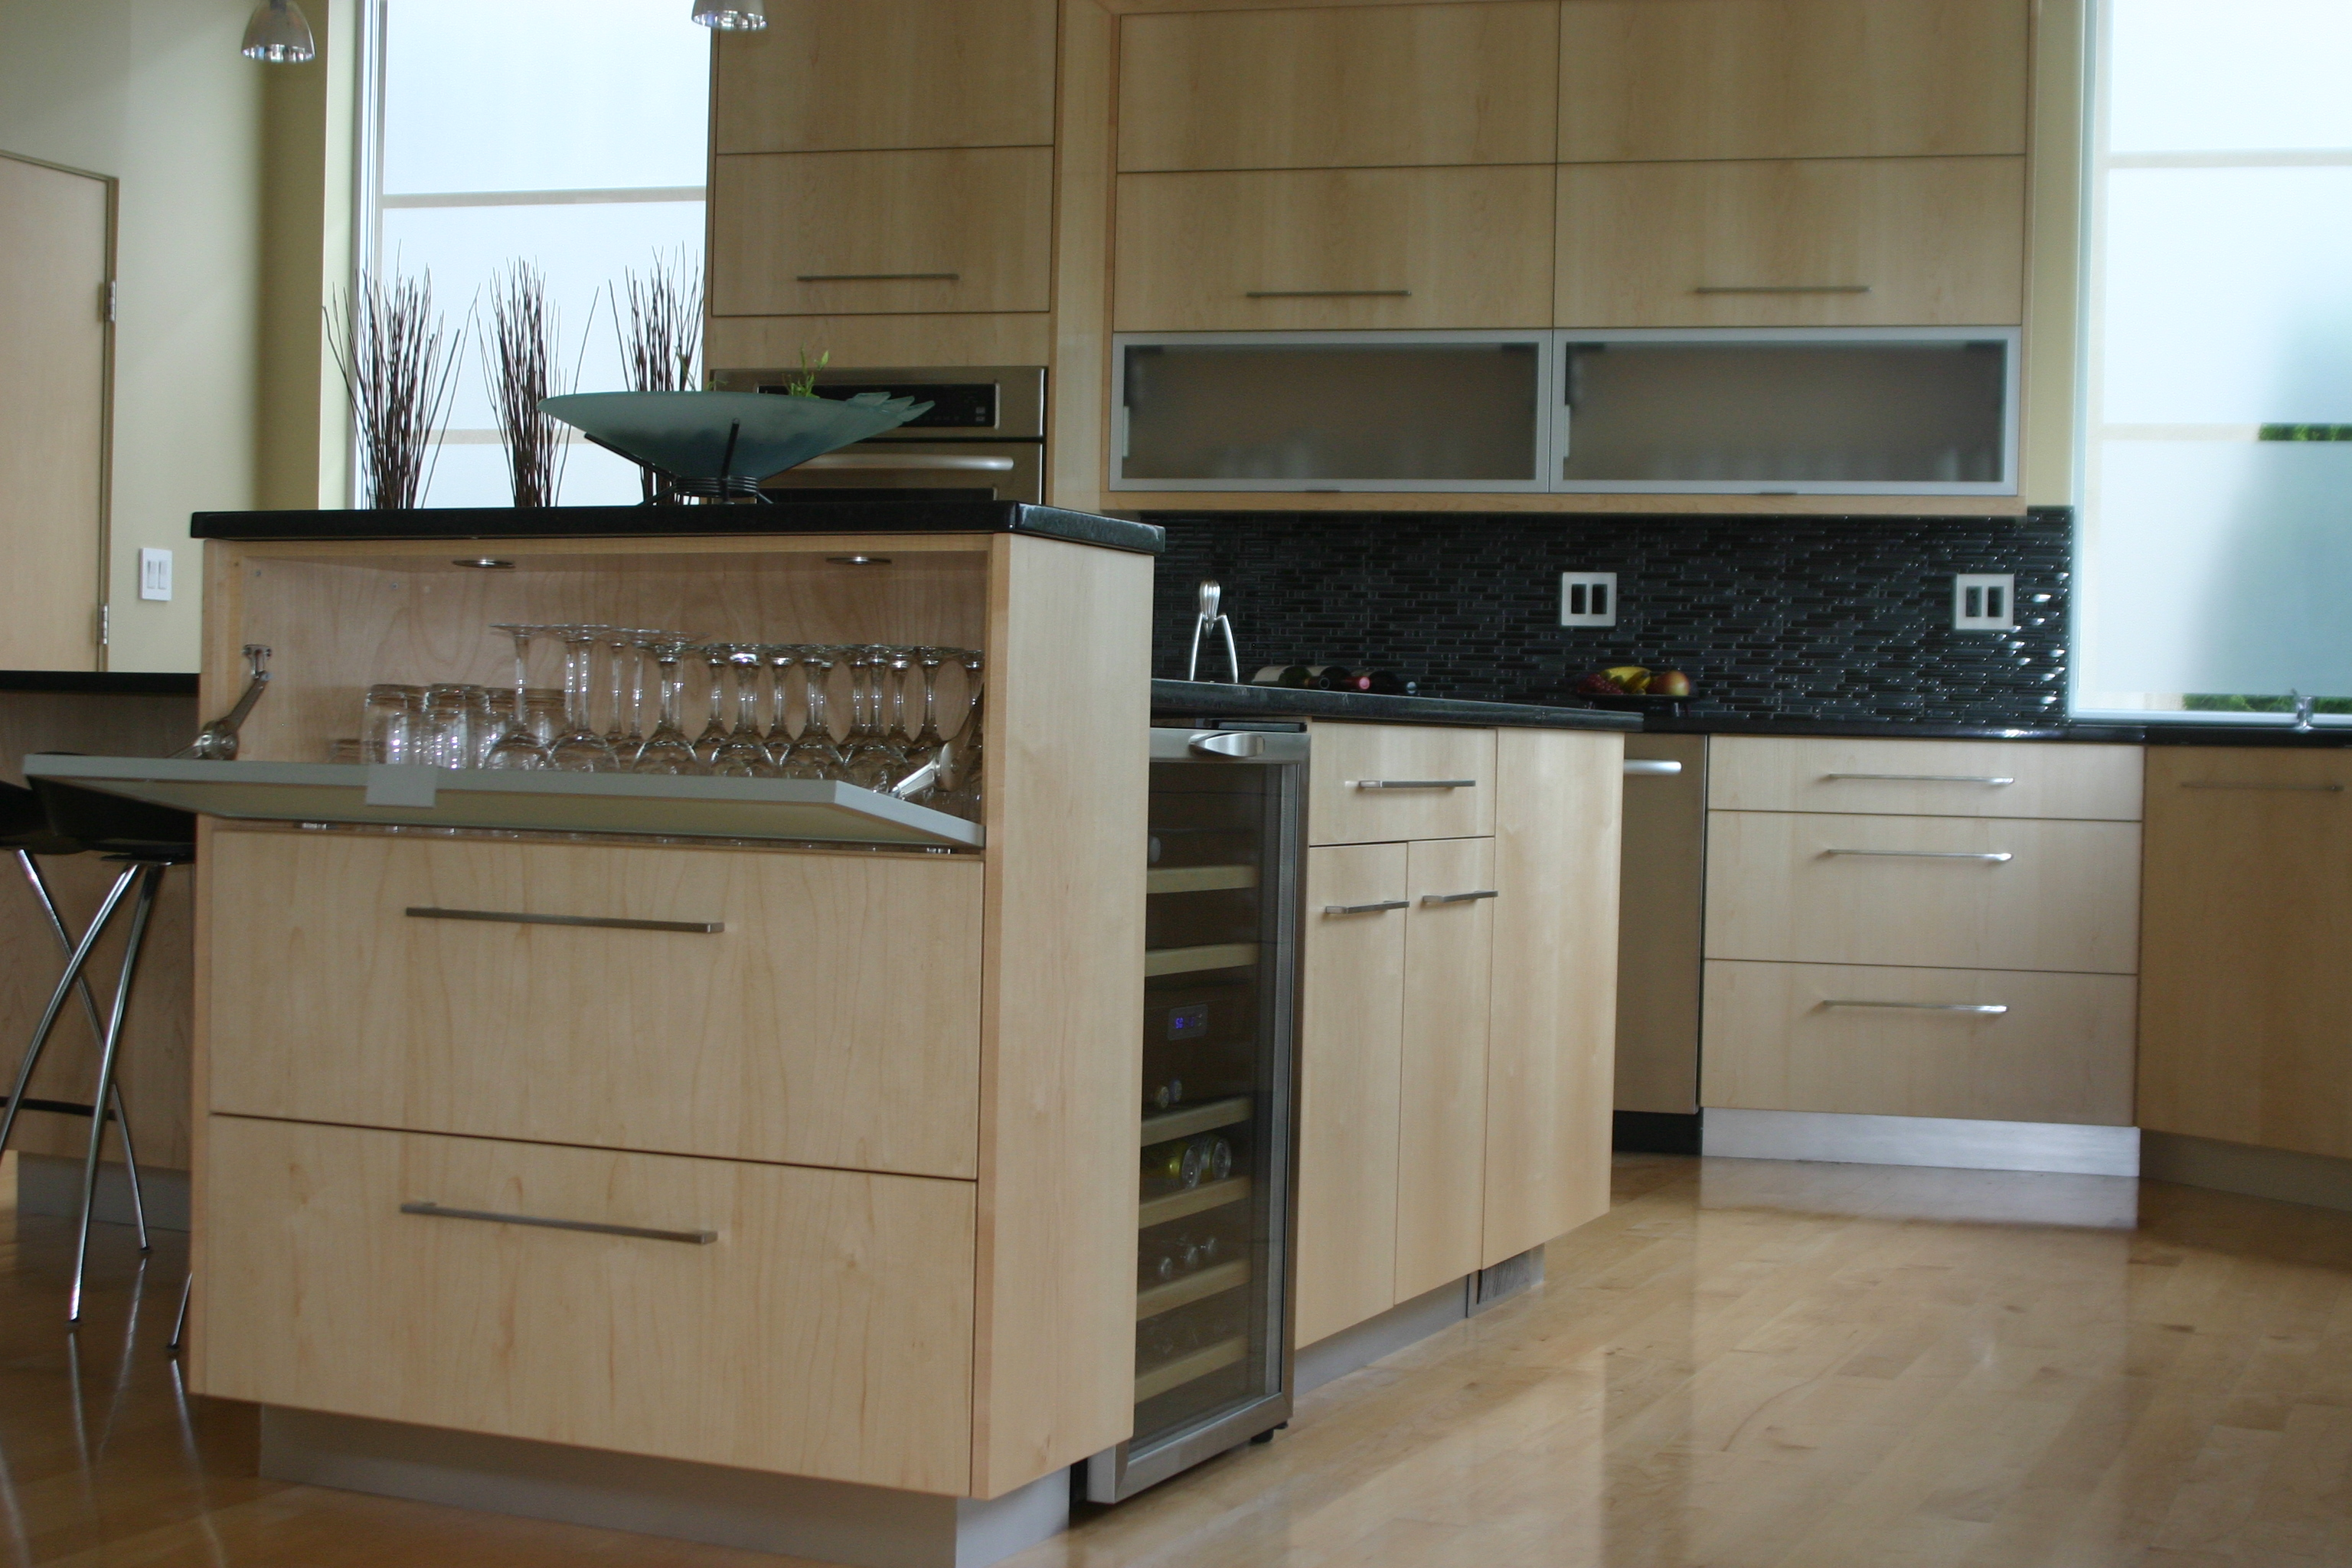 New Aventos Lift System and Display Cabinetry in Eastern Maple Kitchen